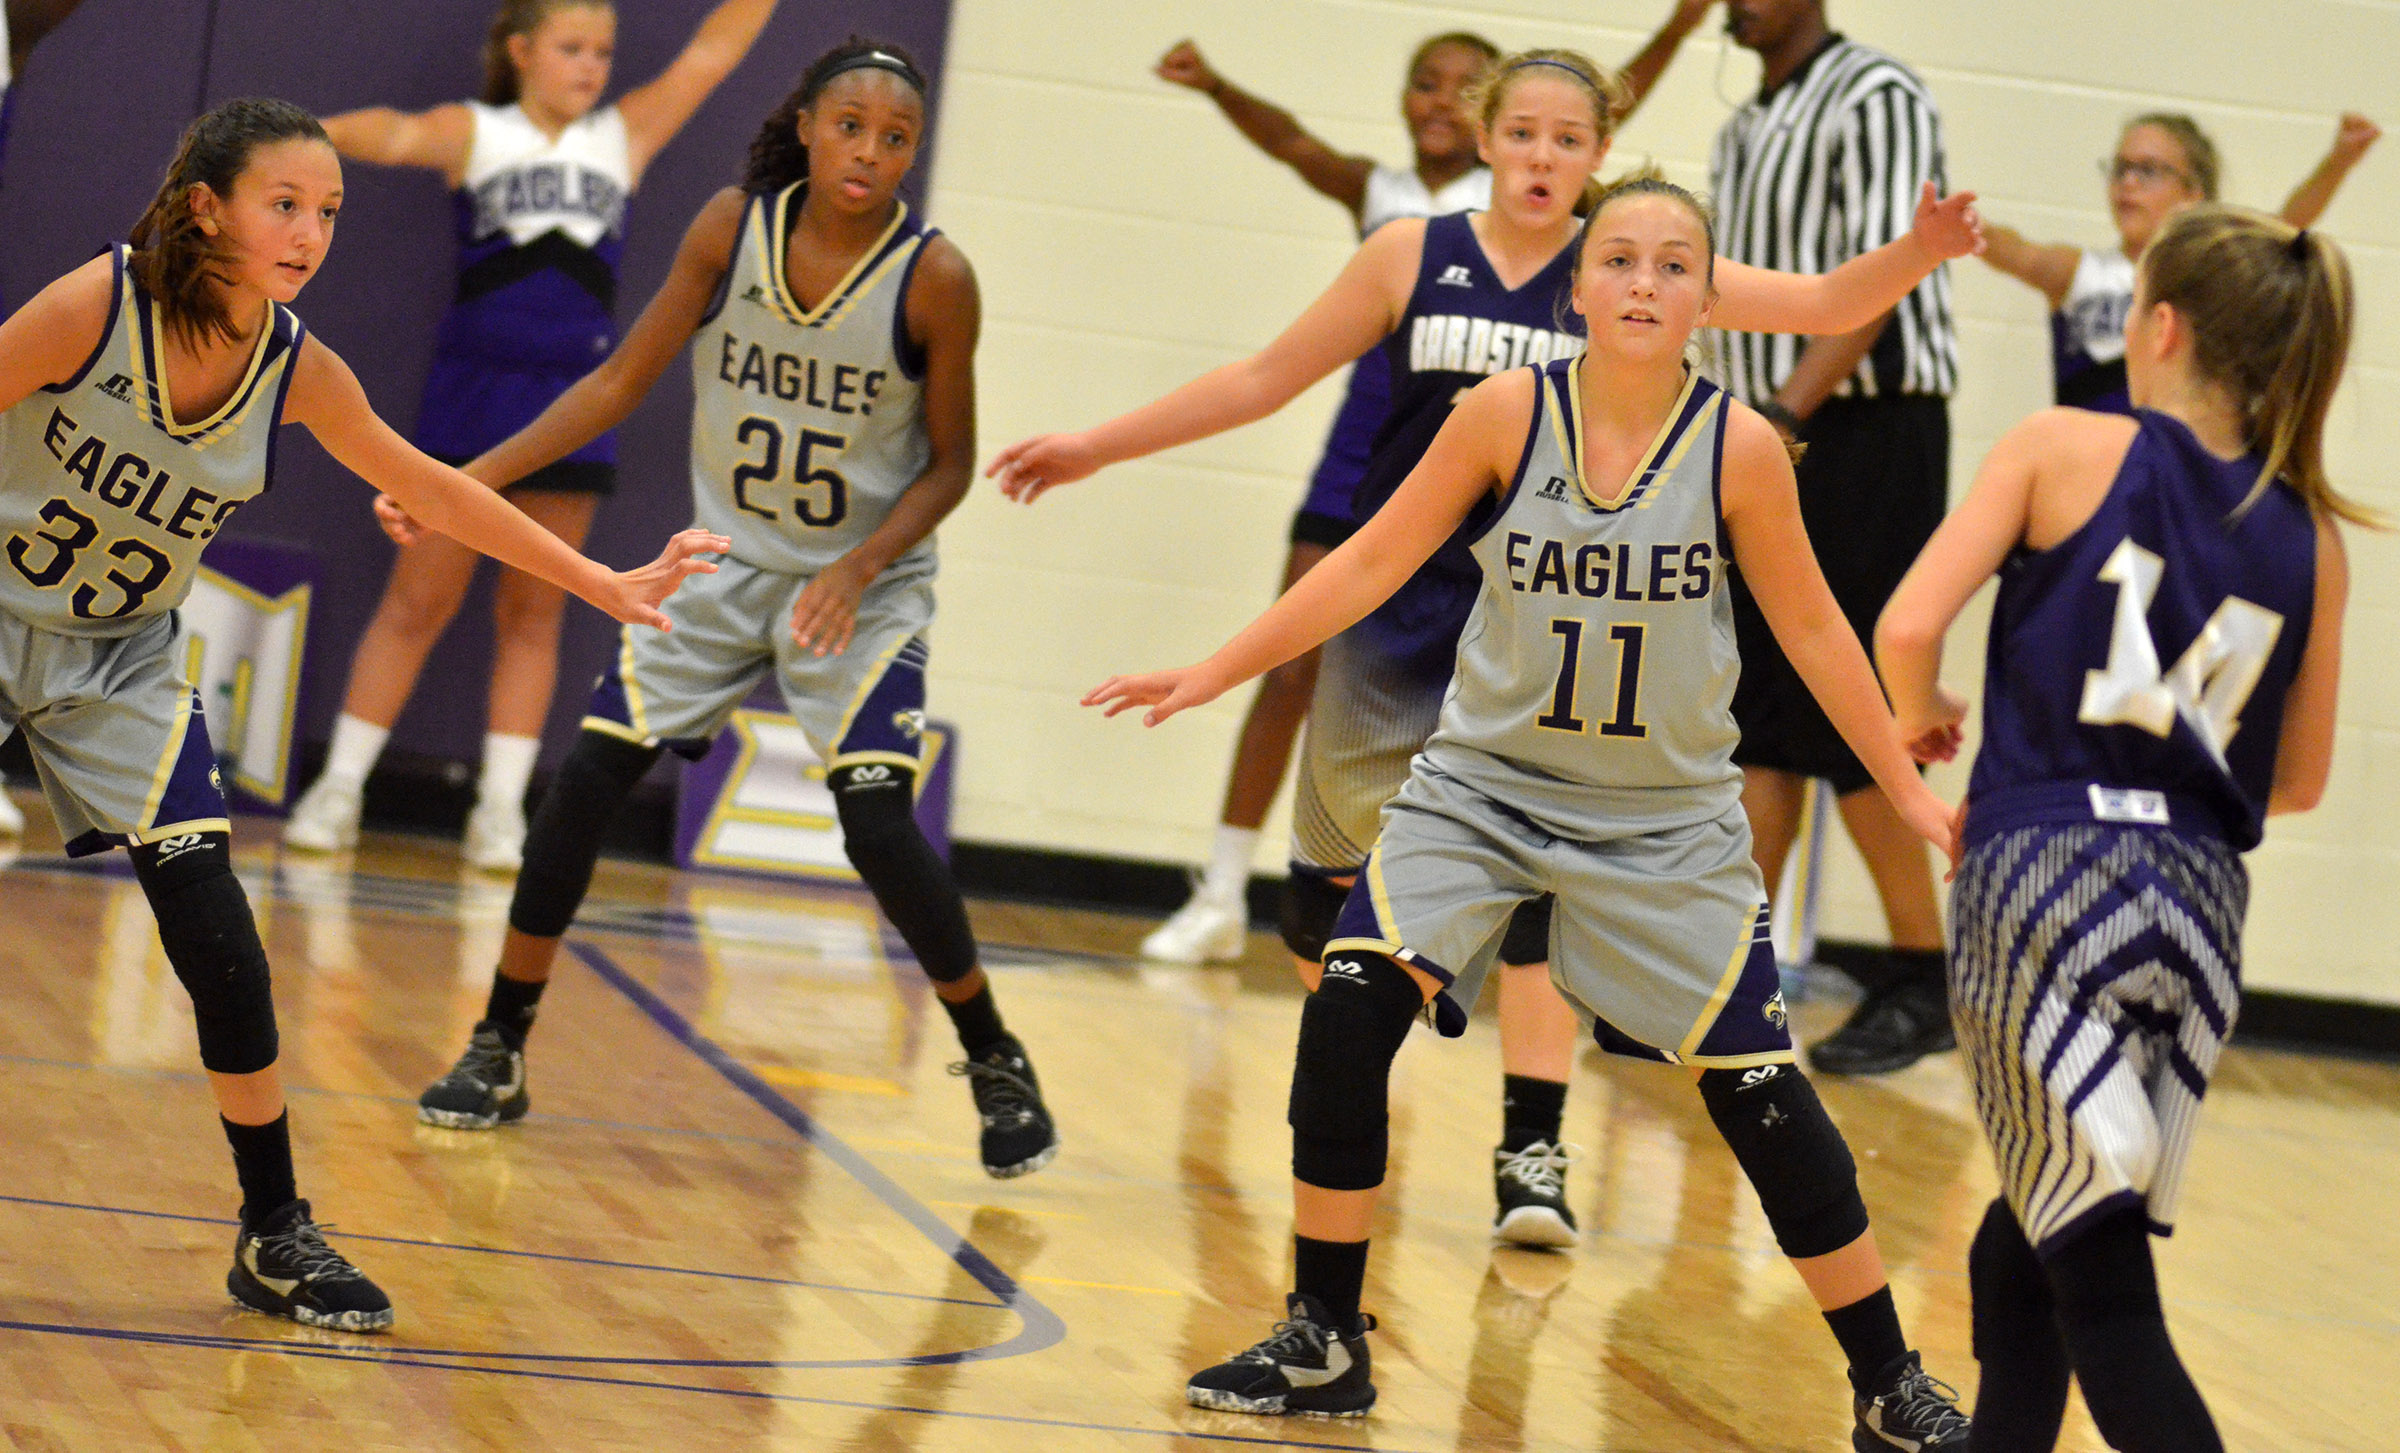 From left, CMS seventh-grader Bri Hayes and eighth-graders Bri Gowdy and Lainey Watson play defense.